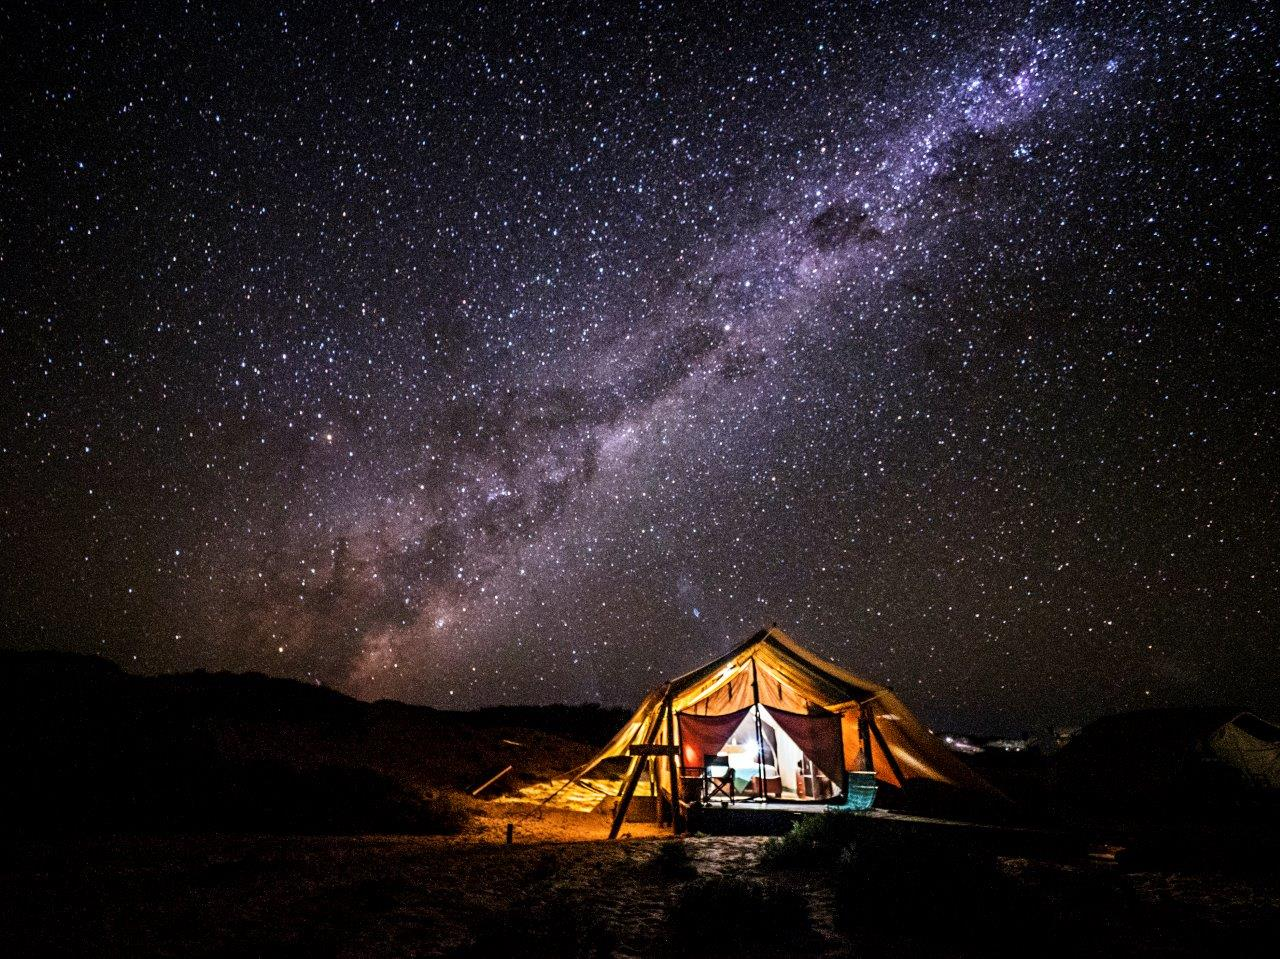 Sal-Salis-Ningaloo-Reef-at-night_credit-Lauren-Bath